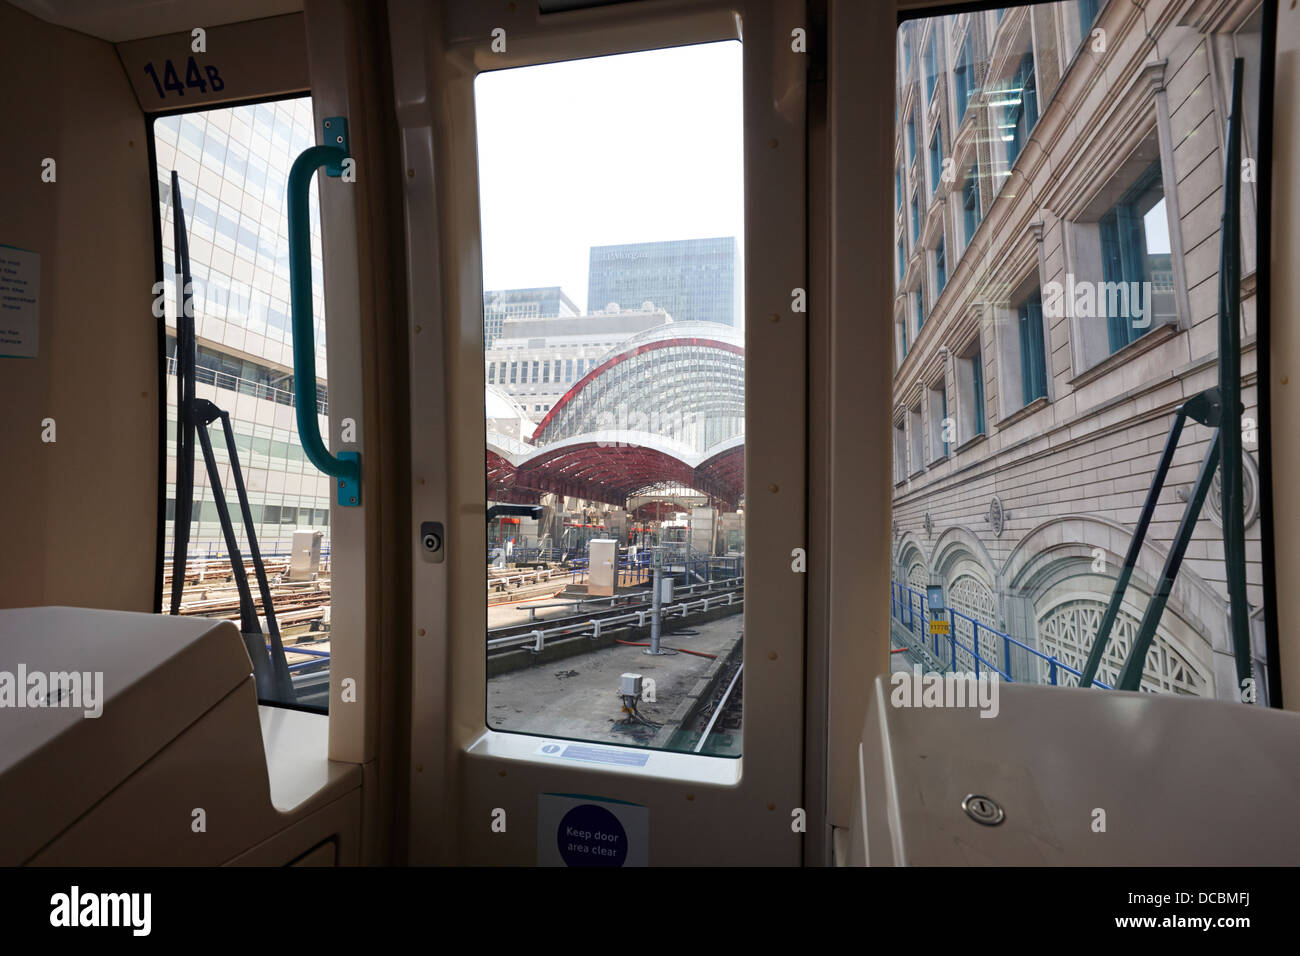 inside carriage at docklands light railway dlr canary wharf station London England UK - Stock Image